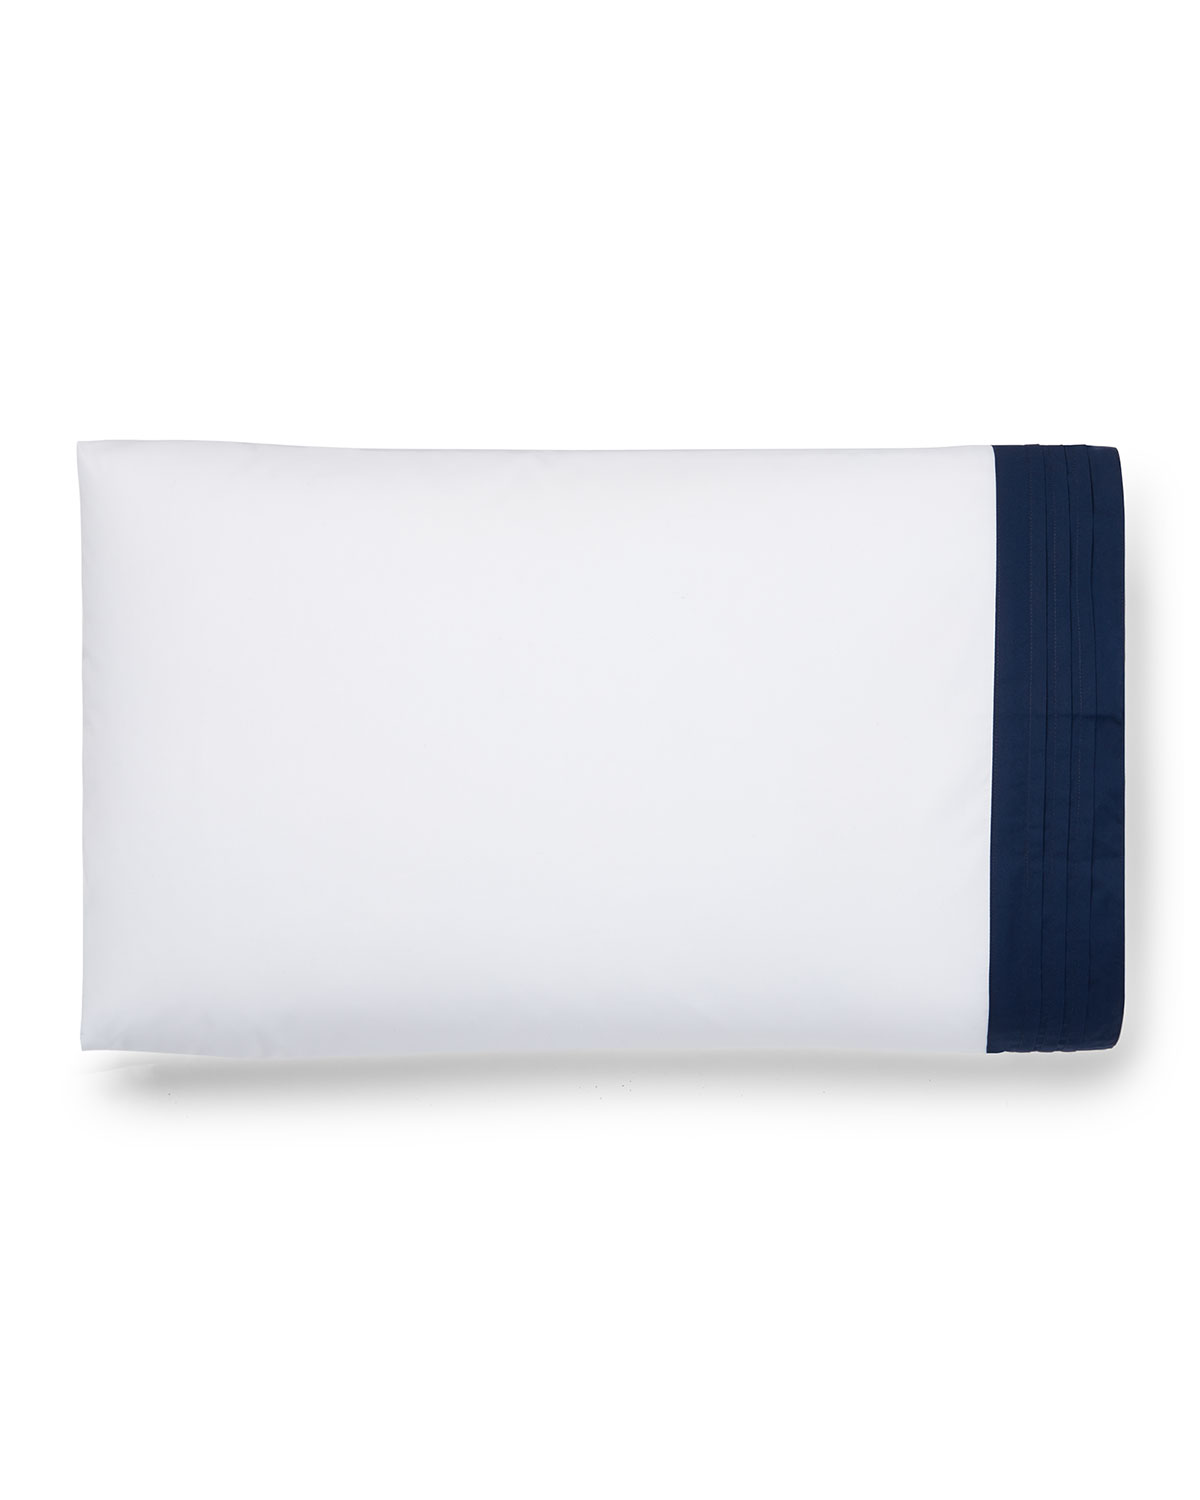 Ralph Lauren Home Wilford King Pillowcase